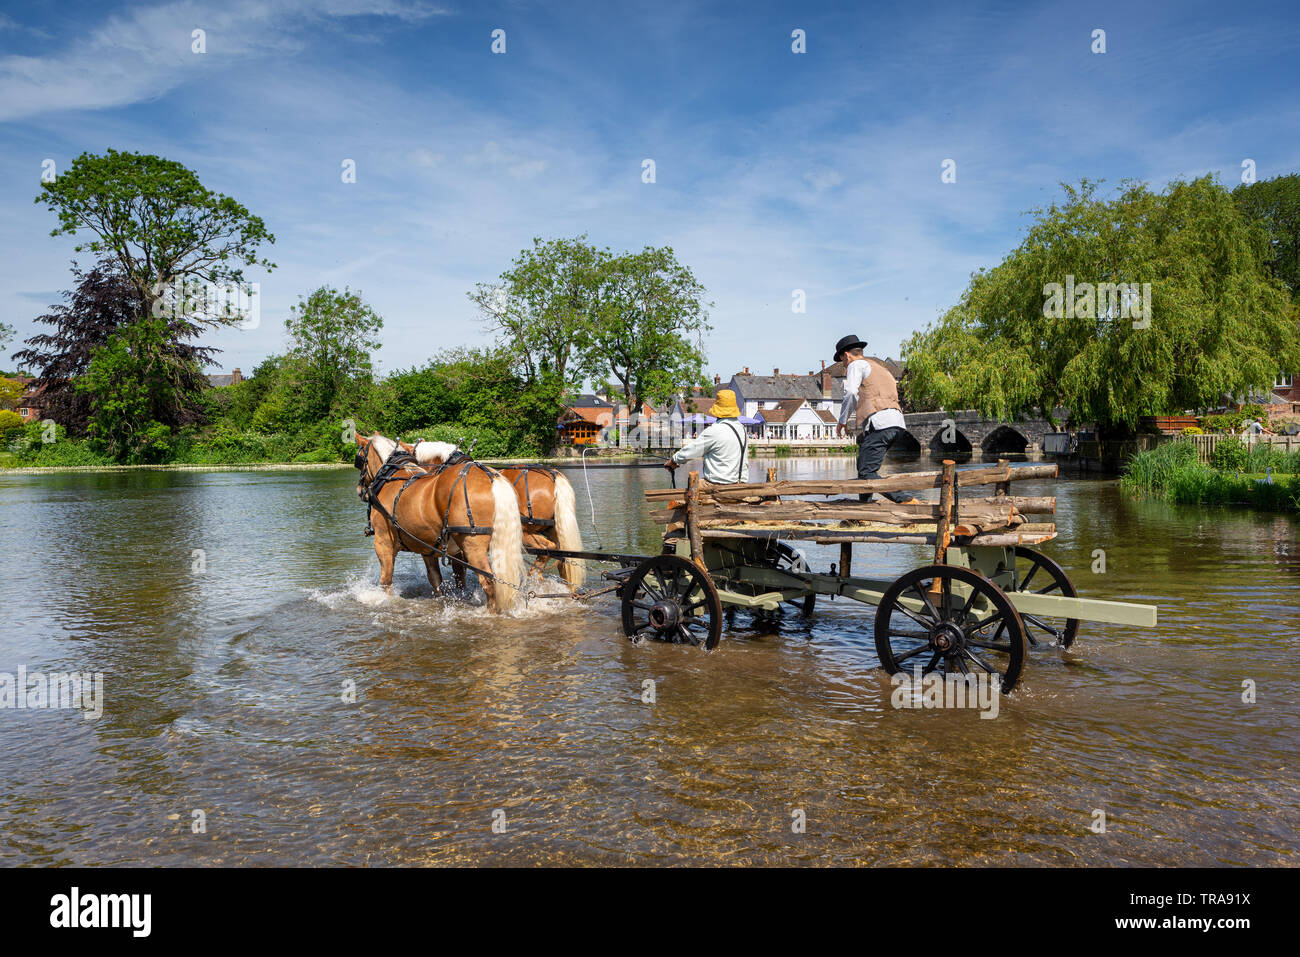 River Avon Fordingbridge, New Forest. Hampshire, UK, 1st June 2019. As part of culture week in the tow, local businessman Davide Shering deploys his Comtois heavy horses to create a scene similar to that in the Hay Wain, a painting by John Constable in 1821. Locals were invited to take part in a spot the difference competition with the original. Credit: Paul Biggins/Alamy Live News Stock Photo